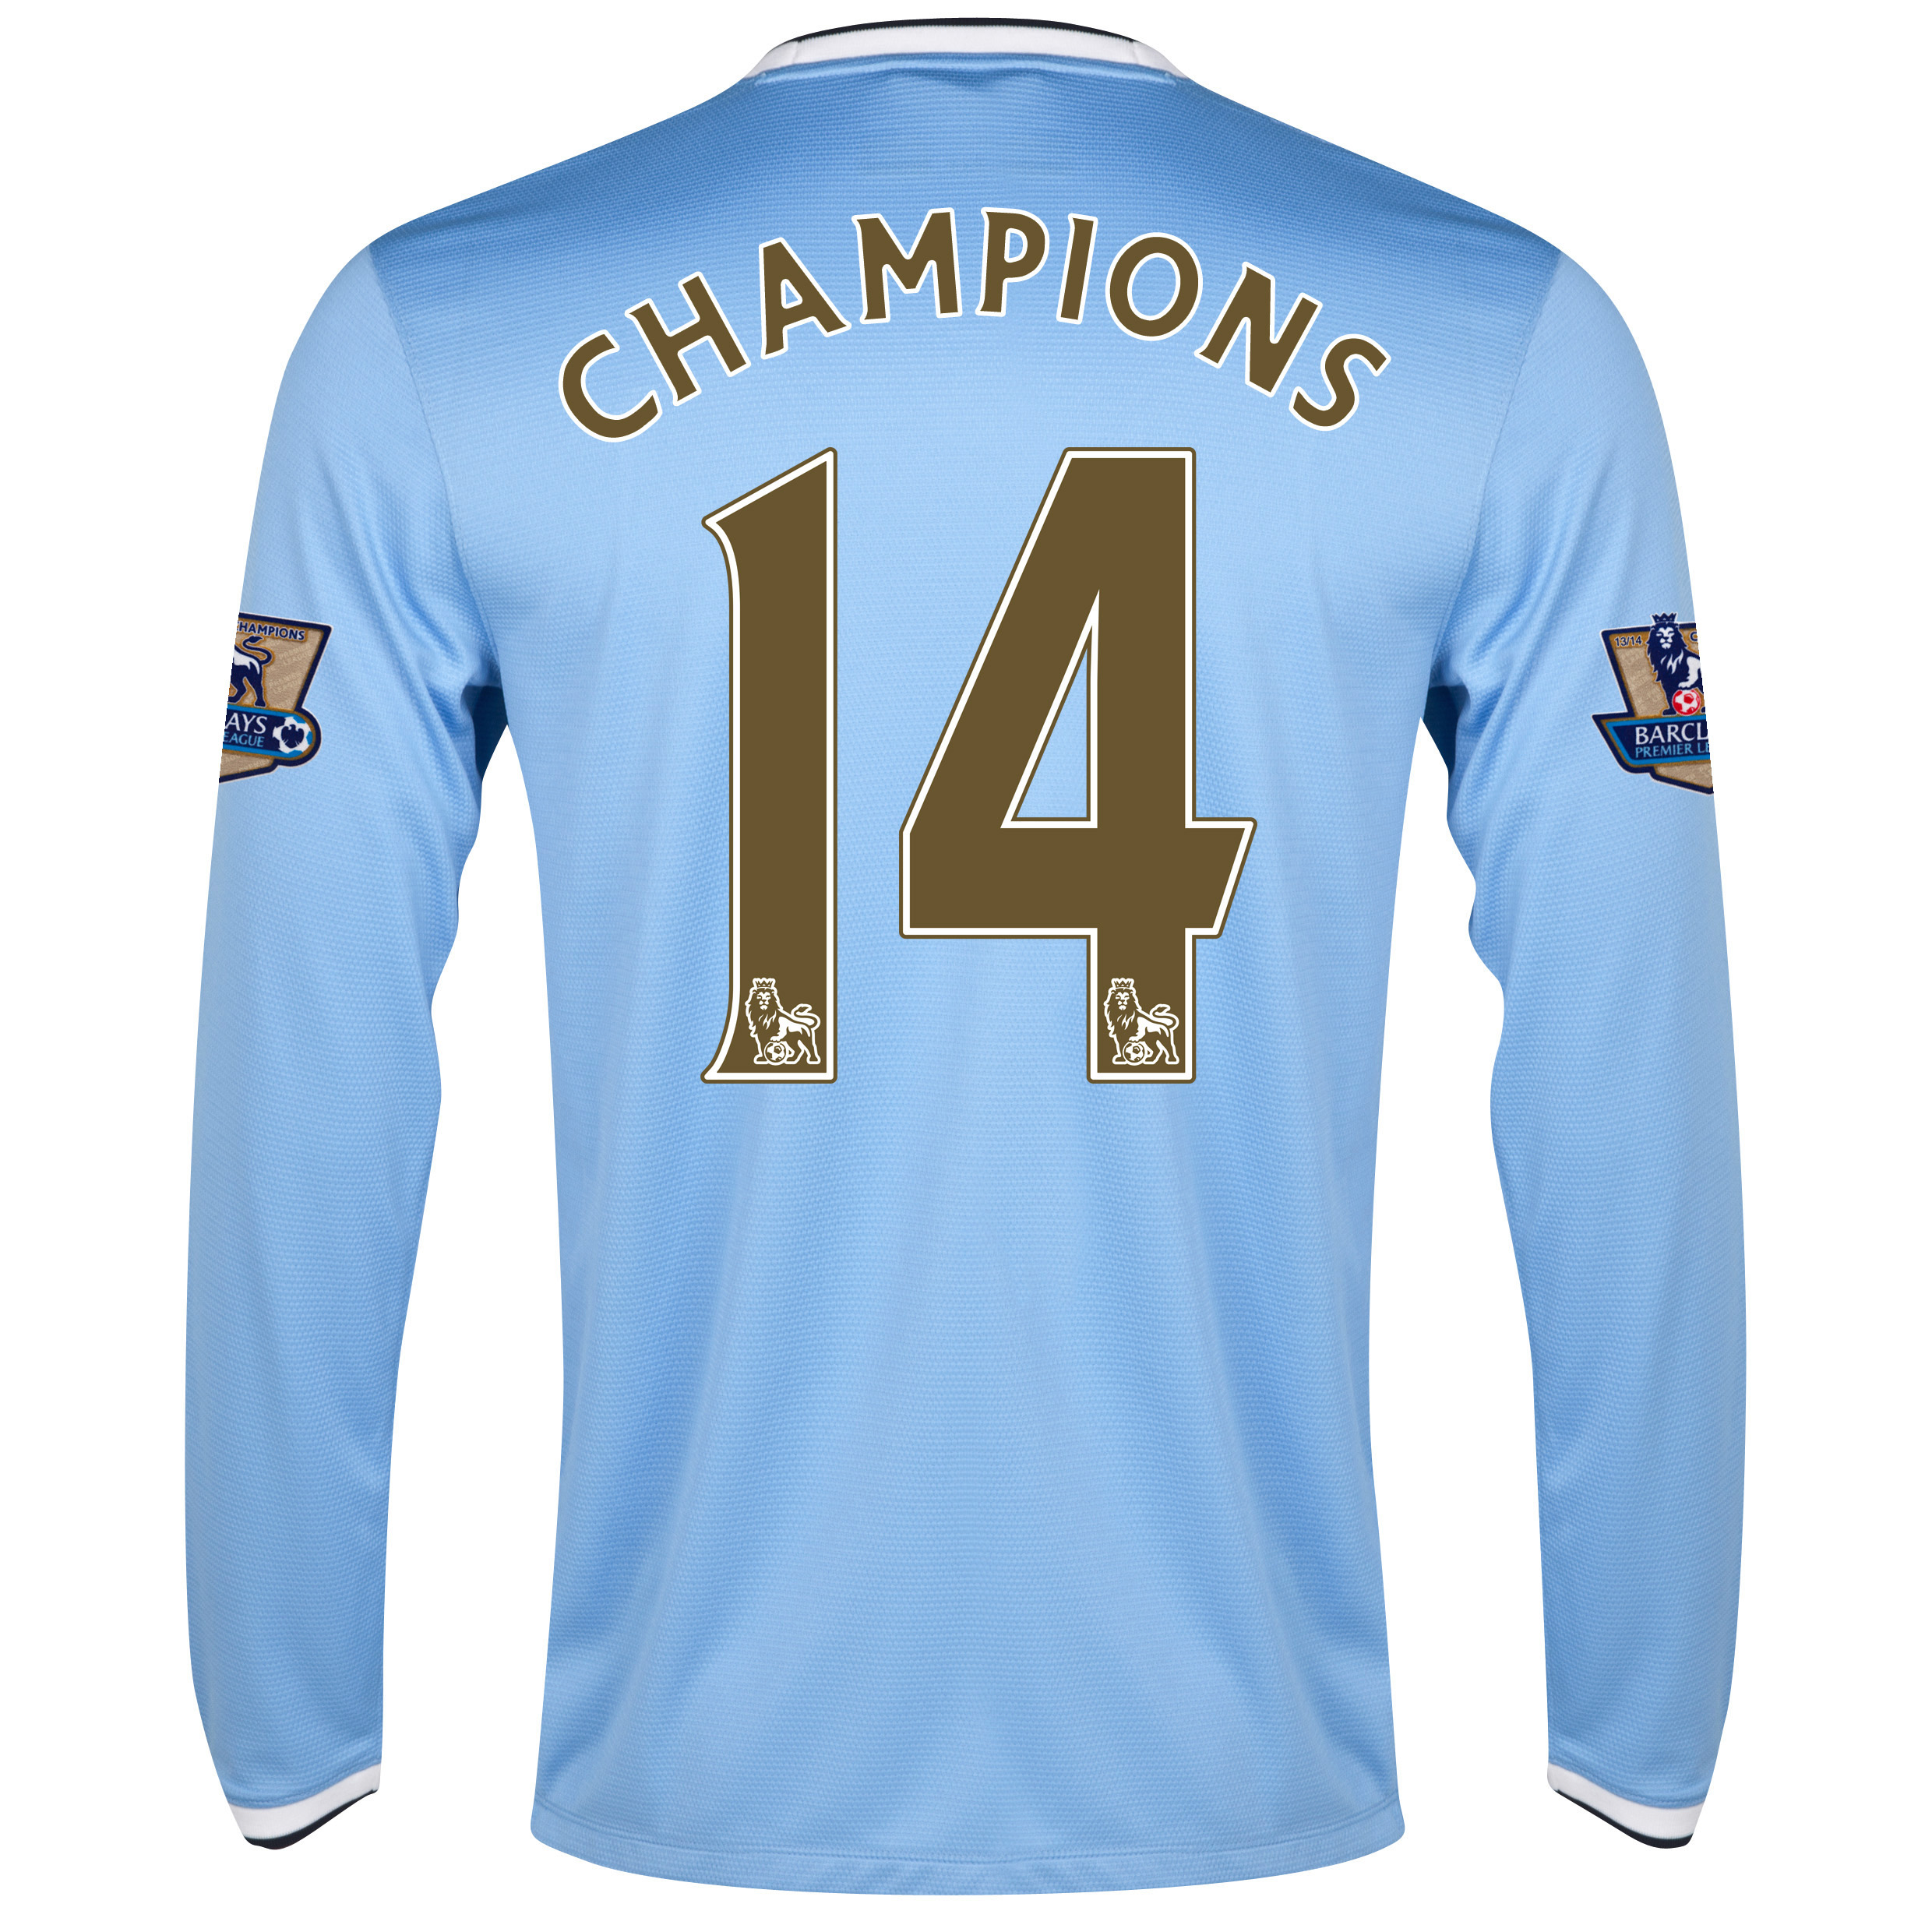 Manchester City Home Shirt 2013/14 with Champions 14 Print including Champions Badges - L/S